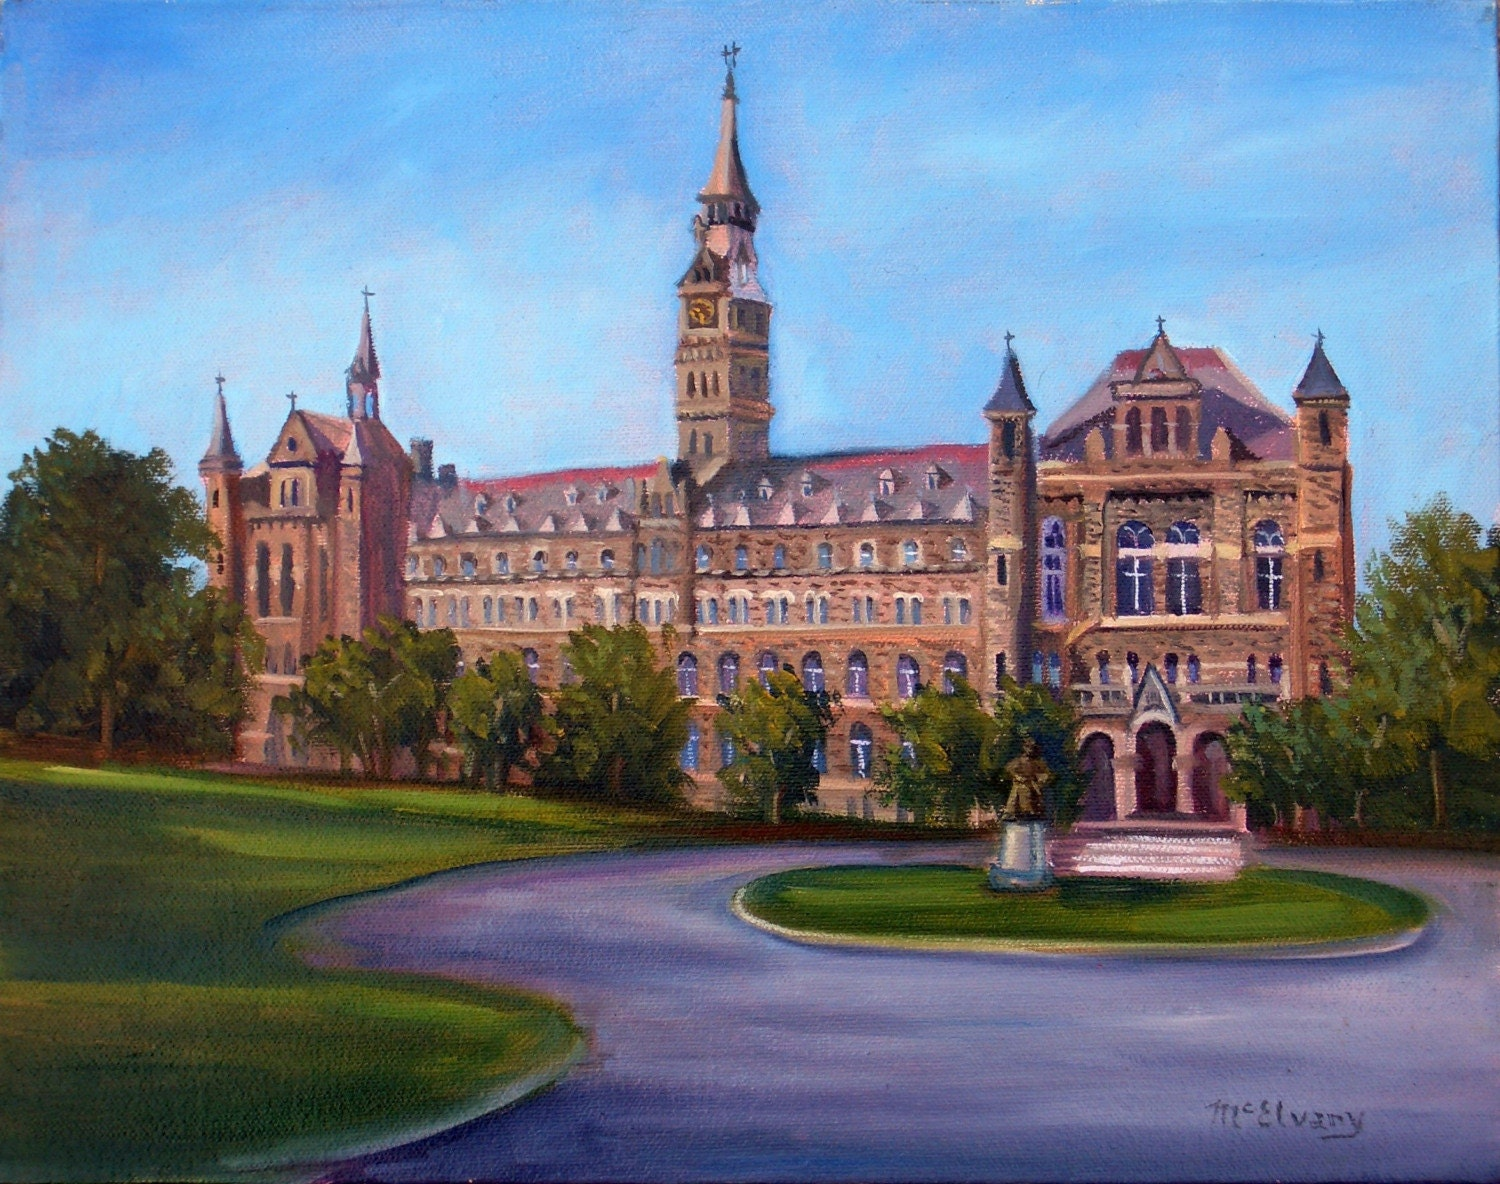 The Healy Building At Georgetown University By Fineartstudios